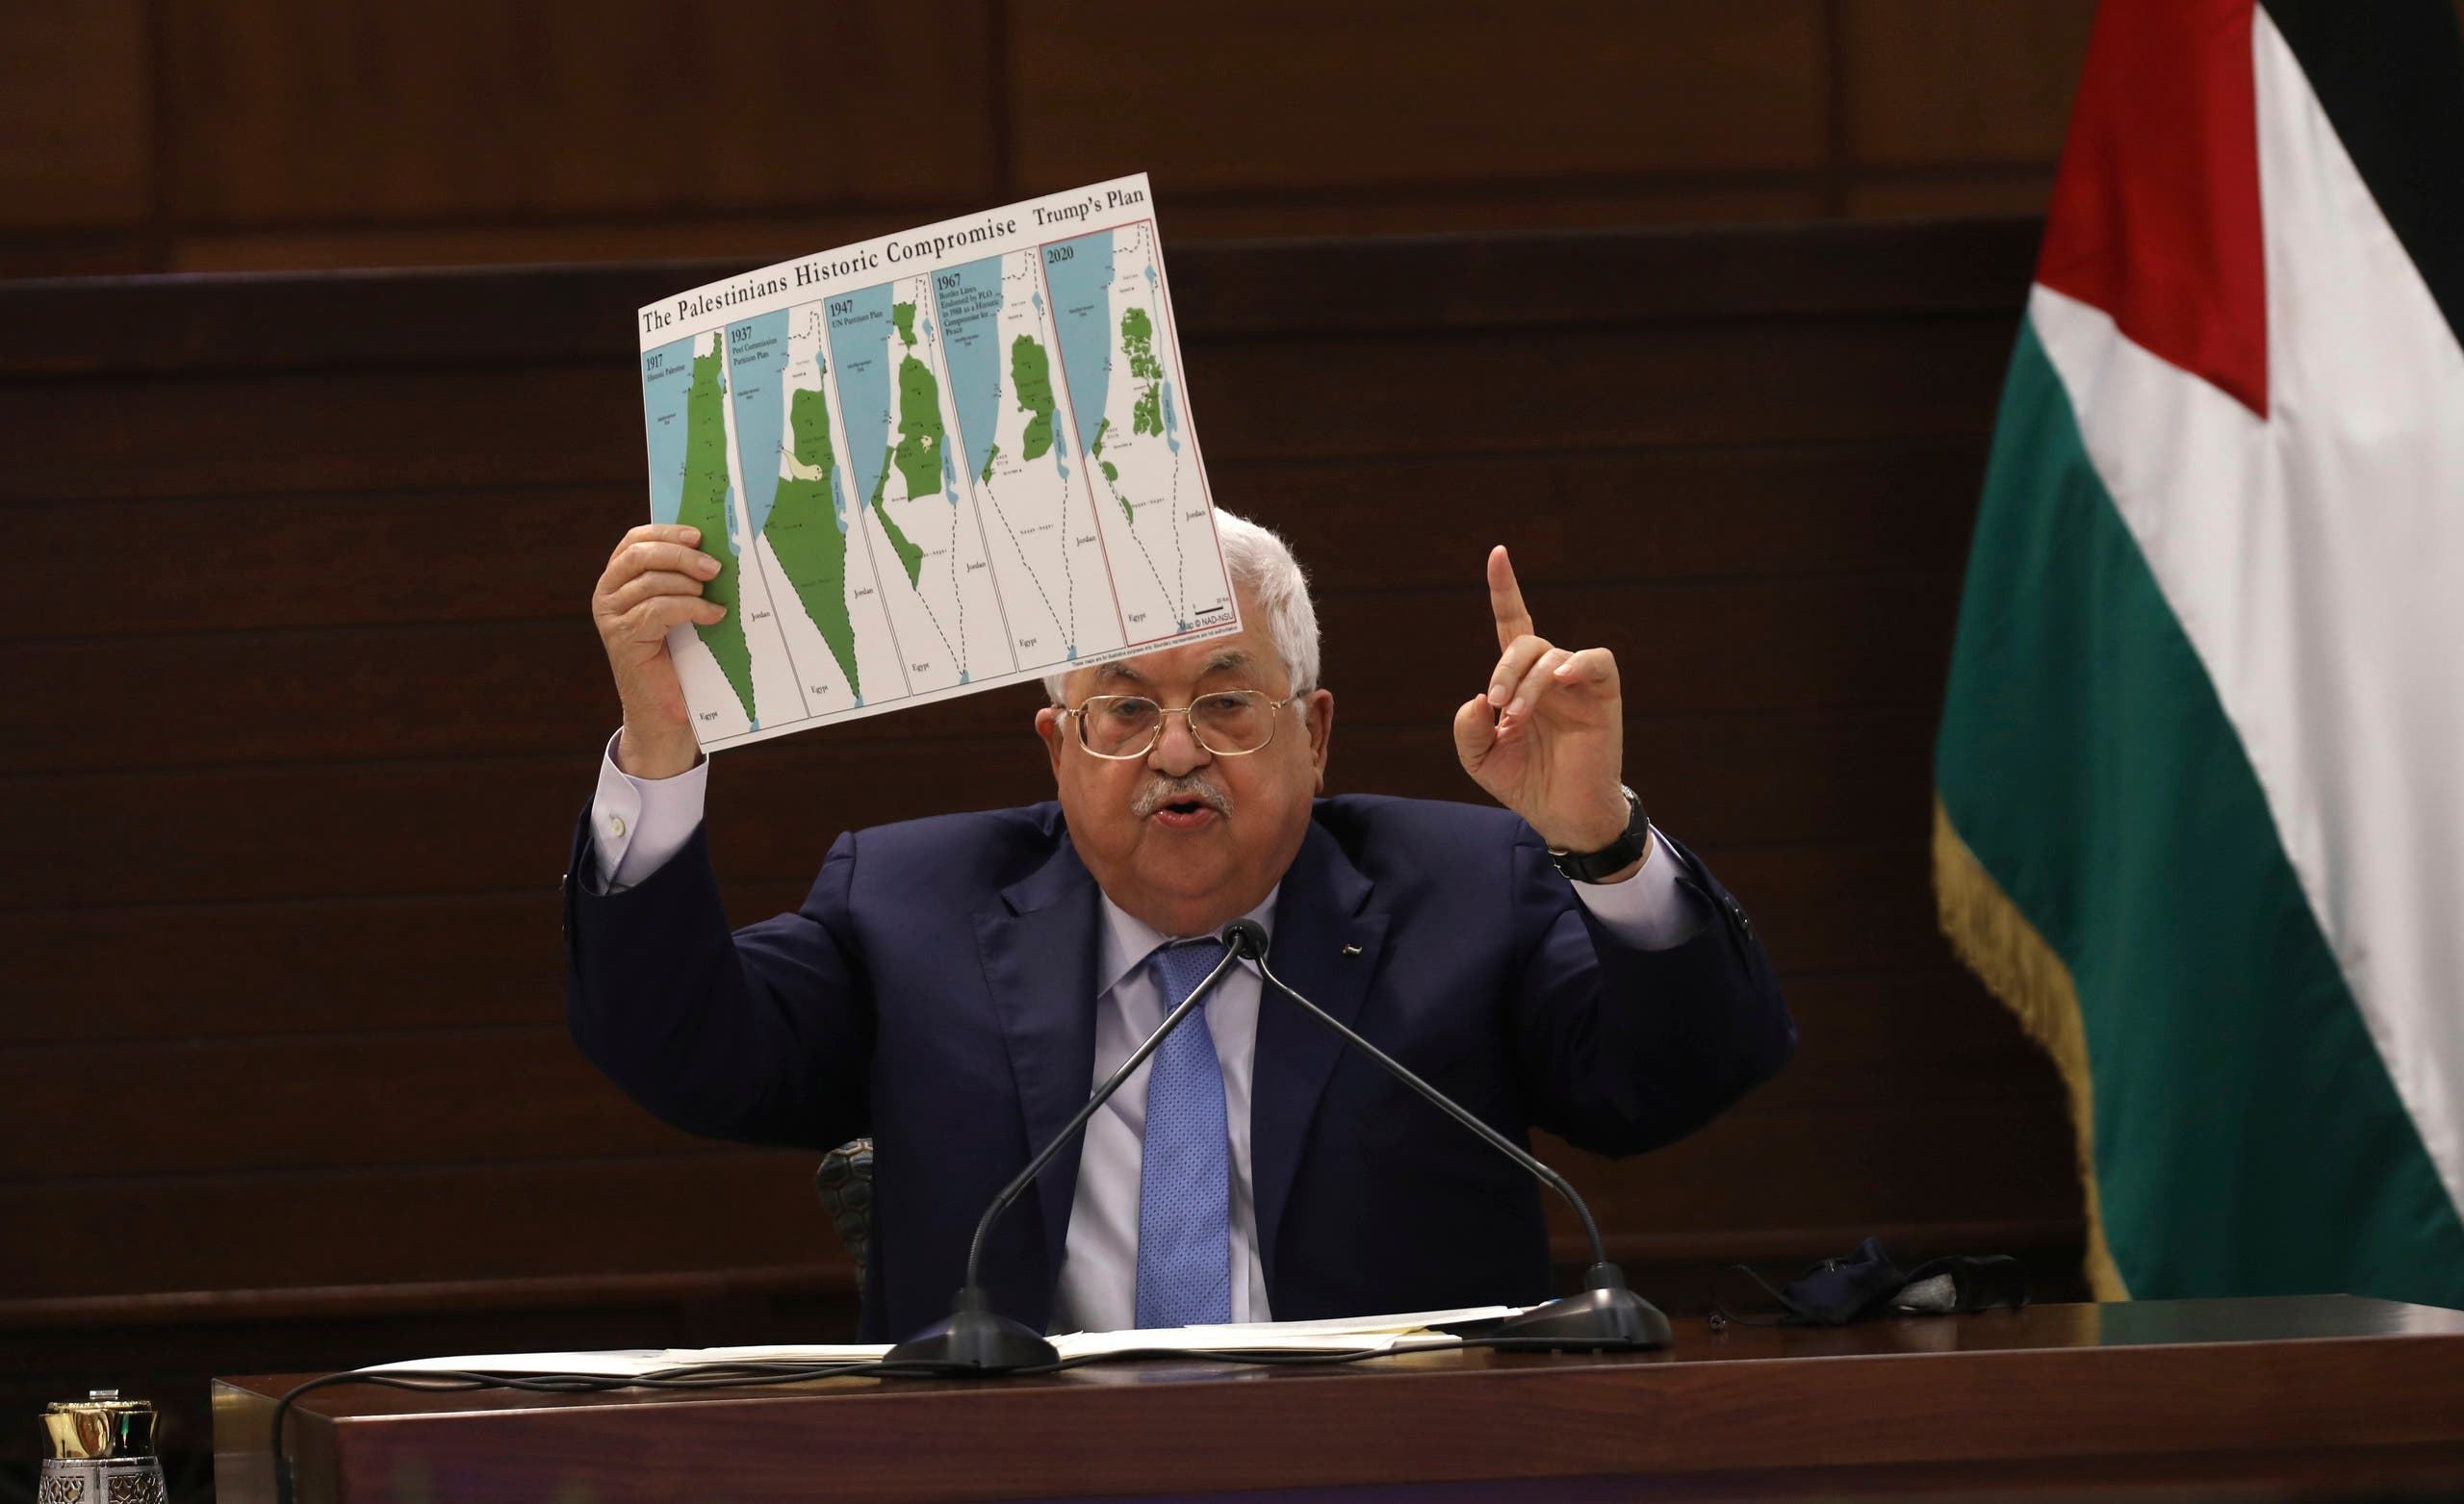 President Mahmoud Abbas holds up a chart during a leadership meeting at his headquarters, in the West Bank city of Ramallah on Sept. 3, 2020. (AP)